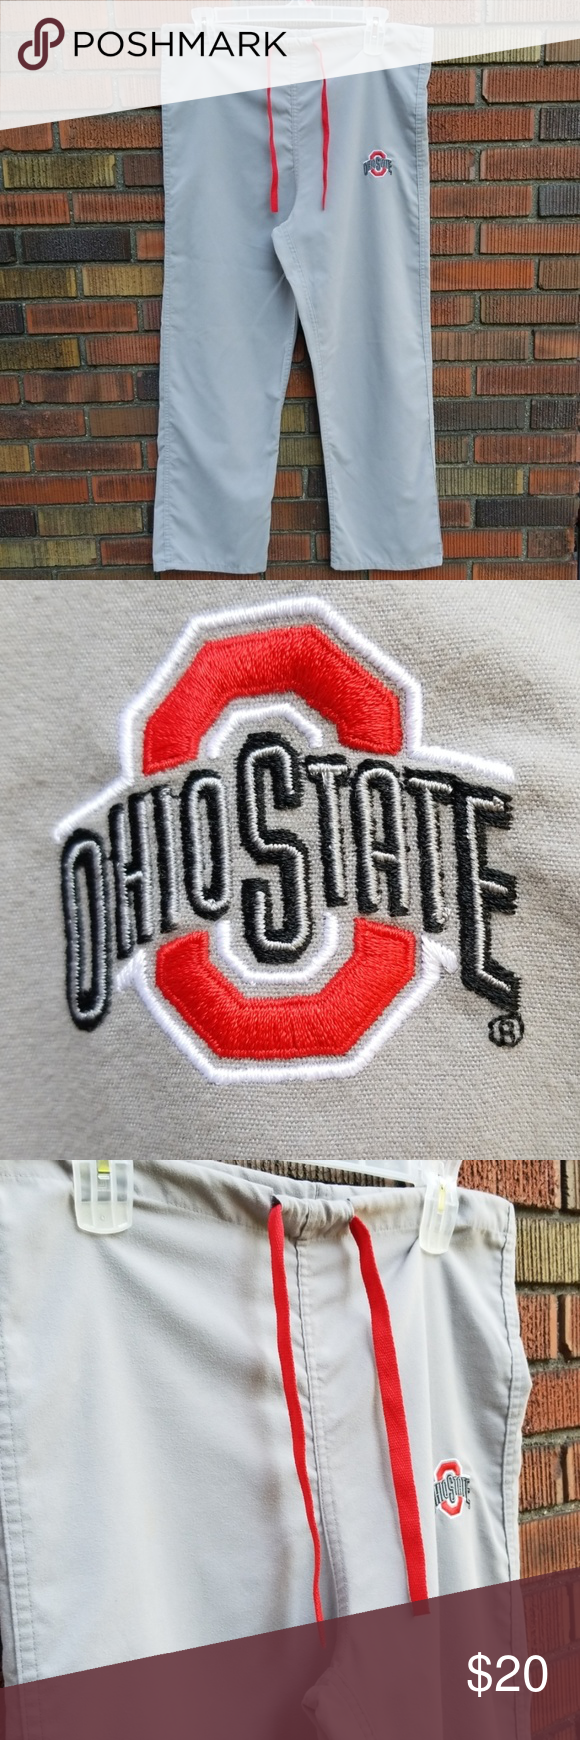 Ohio state buckeyes Nice pre owned condition  Scrub pants gel scrubs Pants #ohiostatebuckeyes Ohio state buckeyes Nice pre owned condition  Scrub pants gel scrubs Pants #18inchcheerleaderclothes